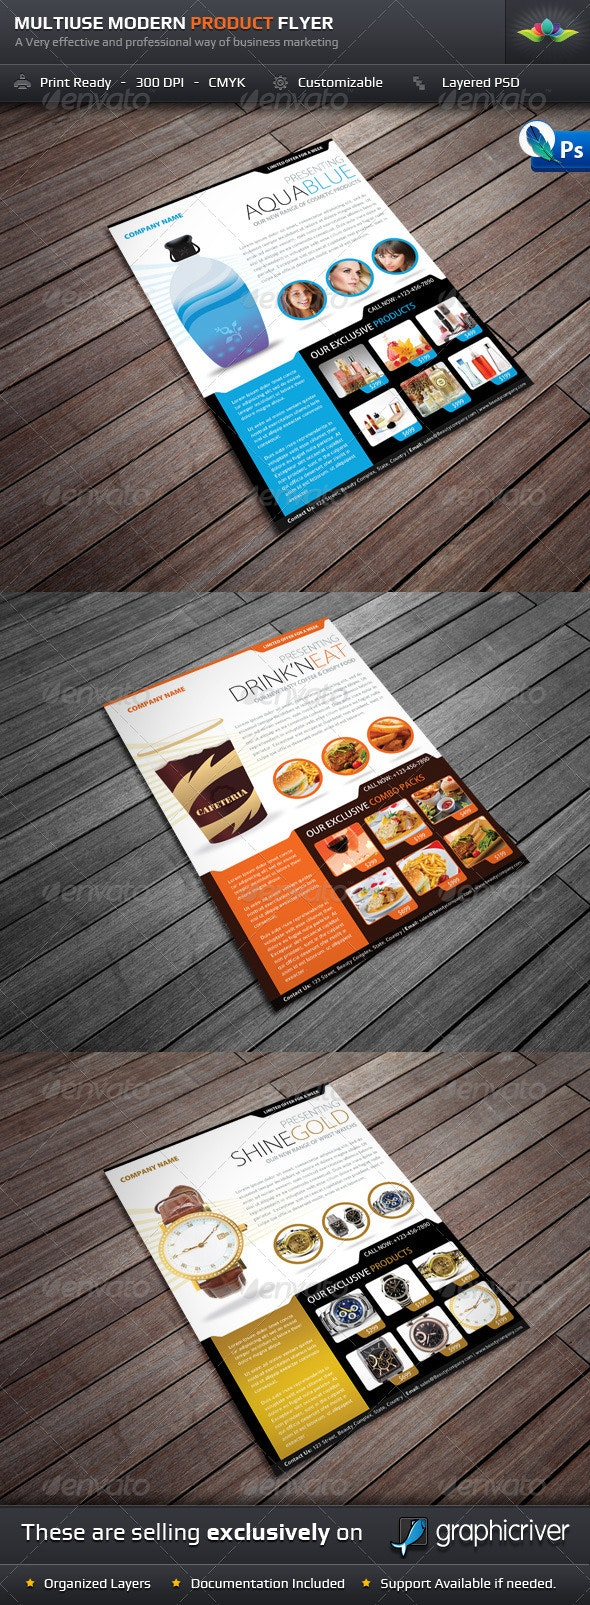 Multiuse Modern Product Flyer - Commerce Flyers